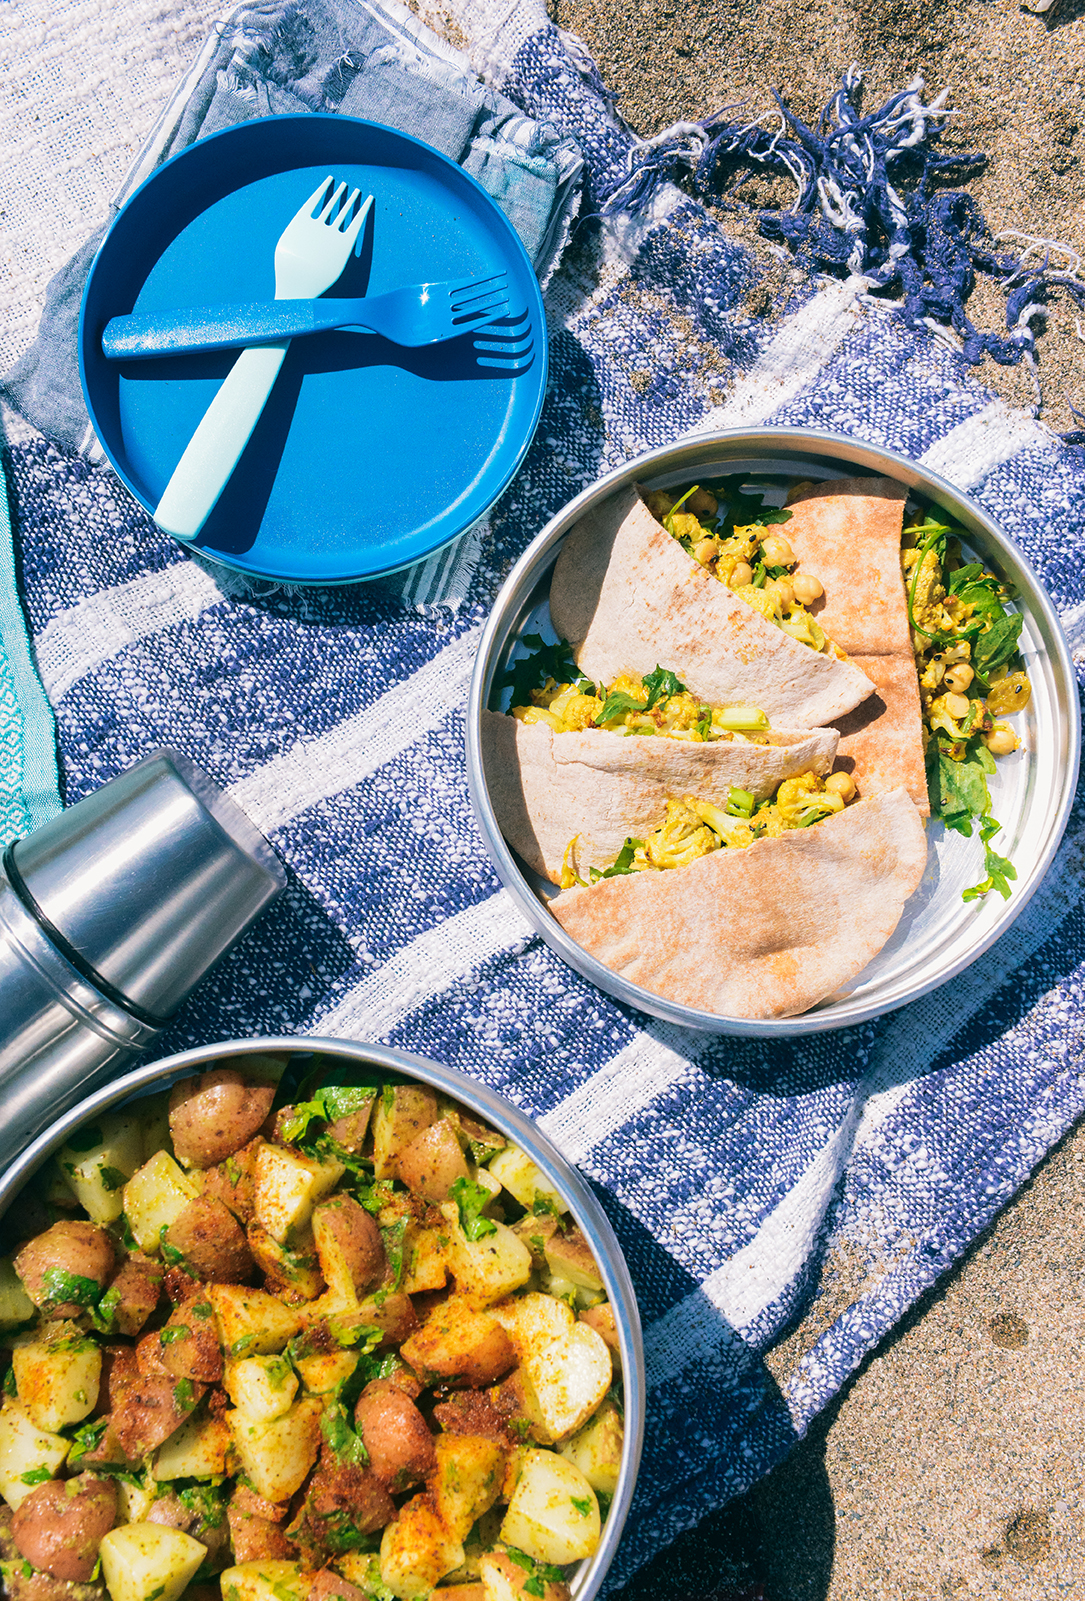 A Vegan Beach Picnic & Curried Cauliflower Wraps